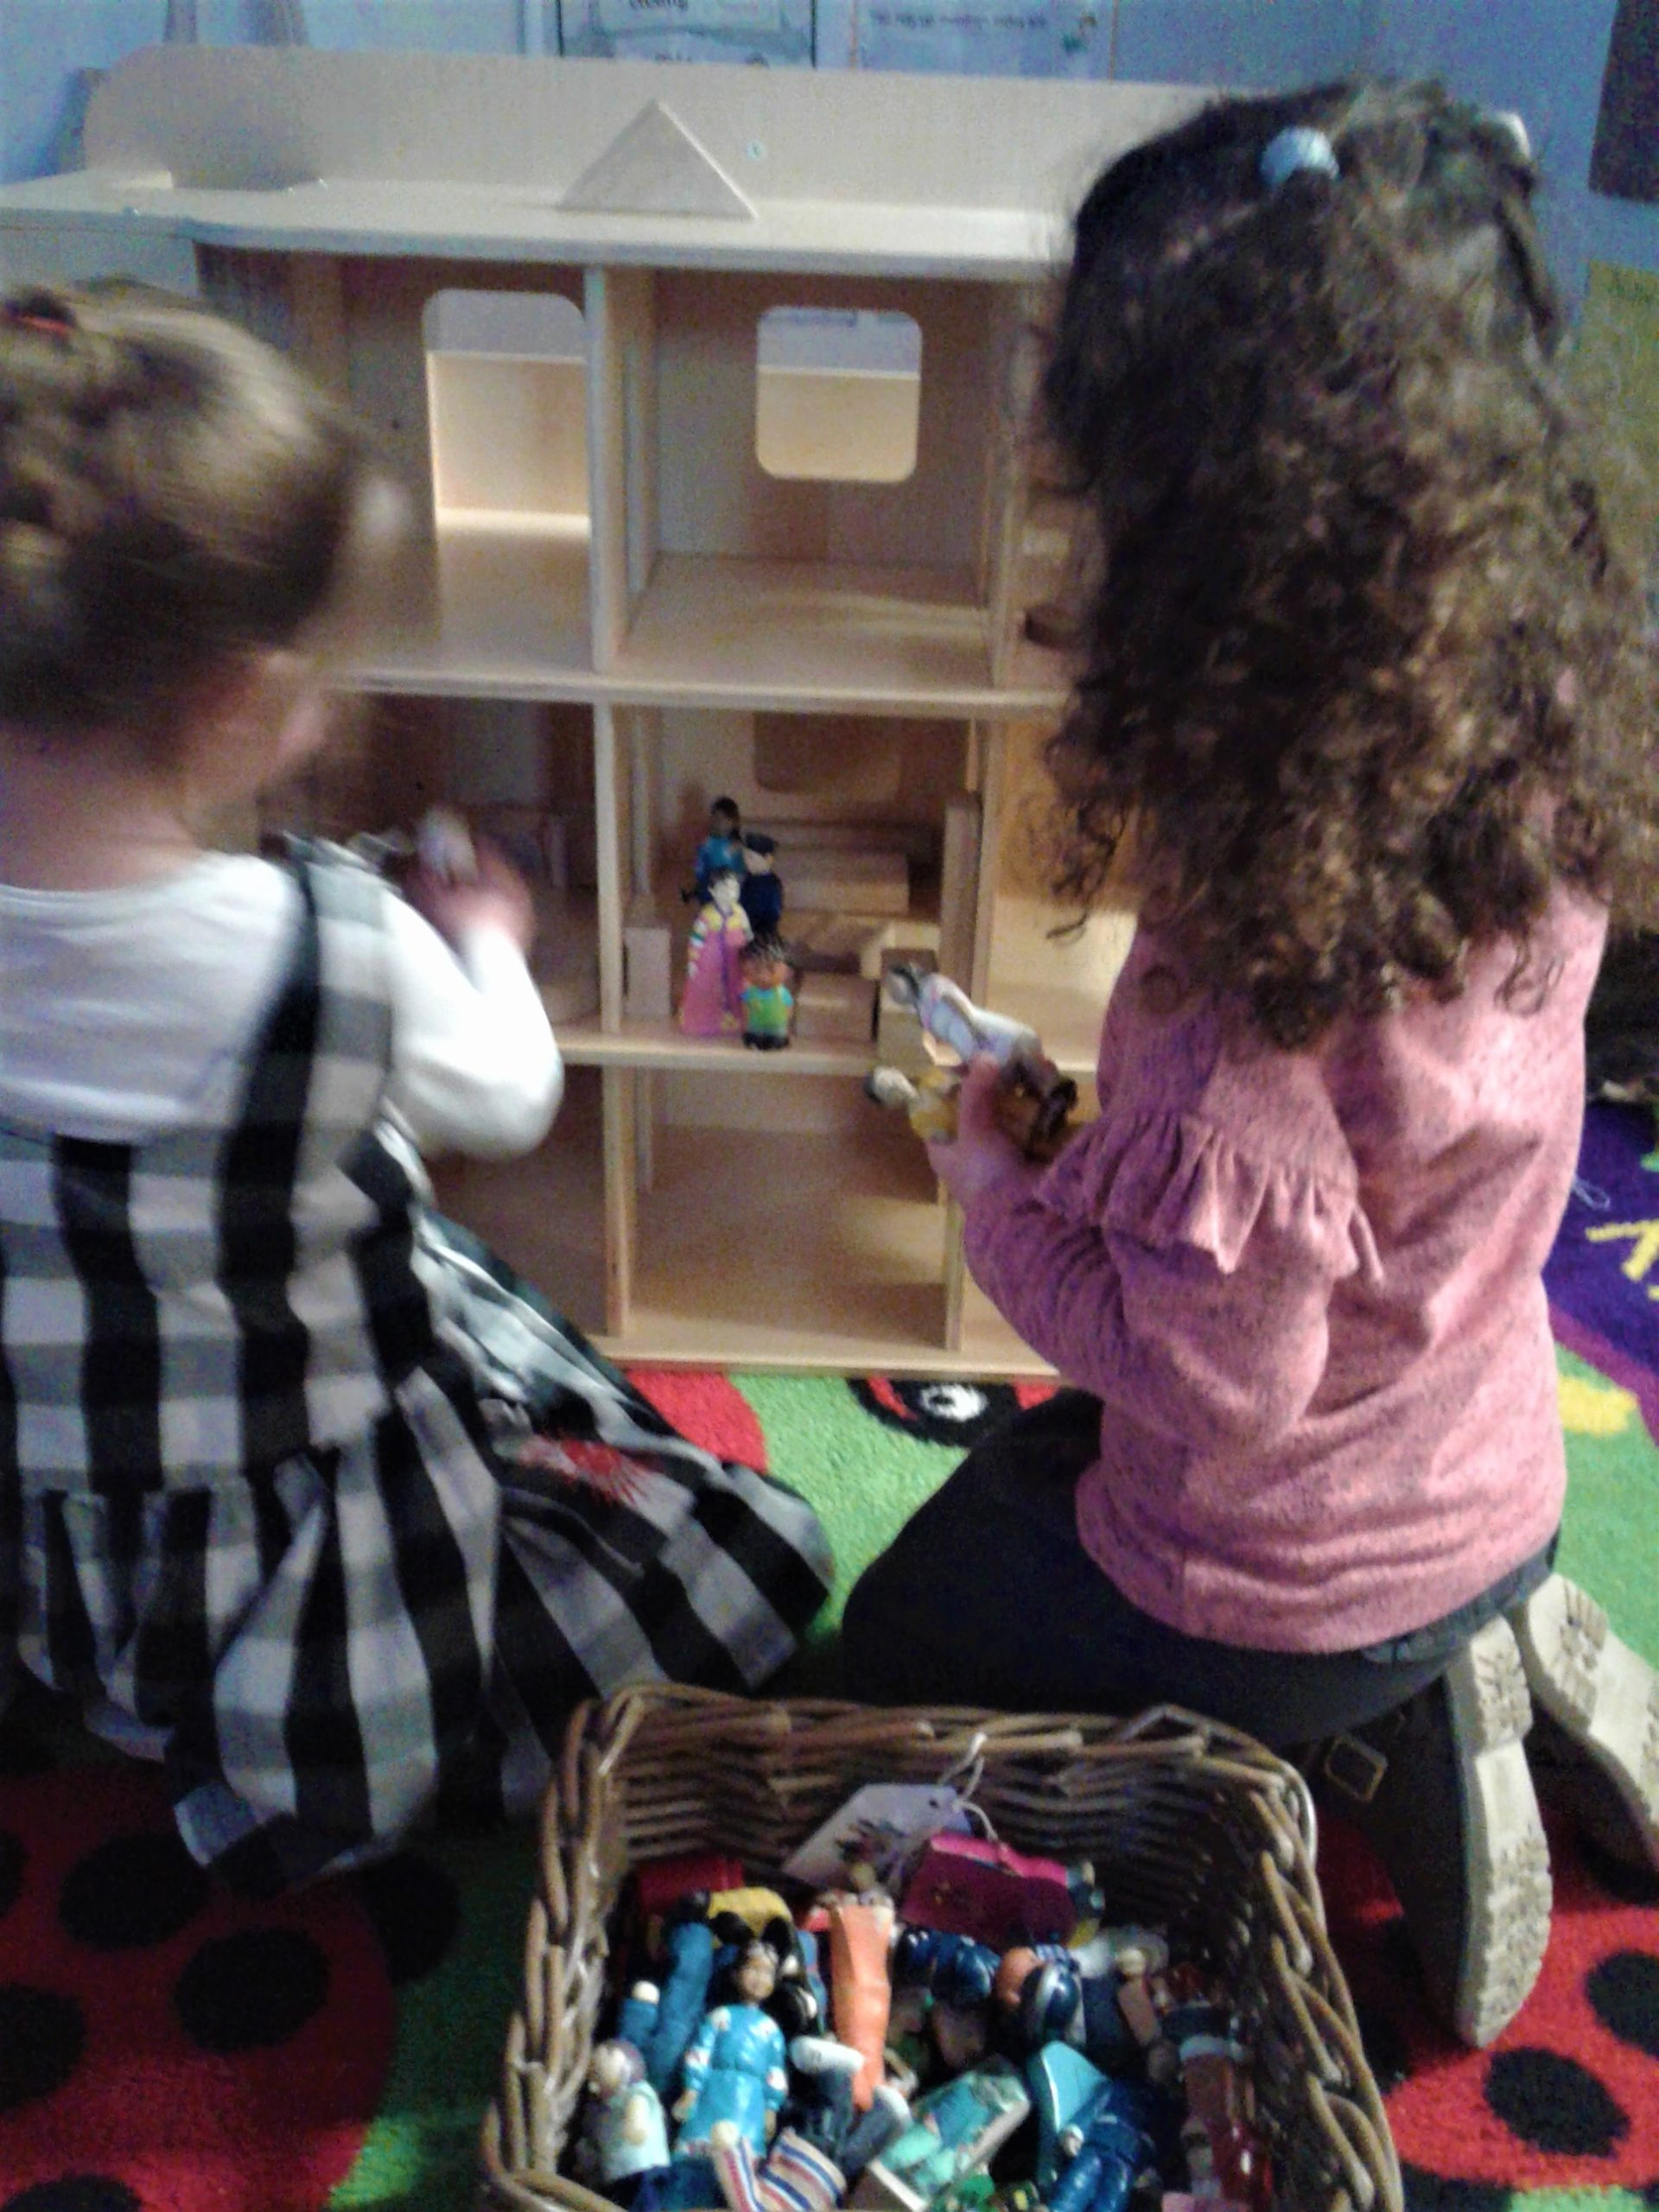 Its been an exciting week in Pre-school 2 as we've had some new toys to investigate!